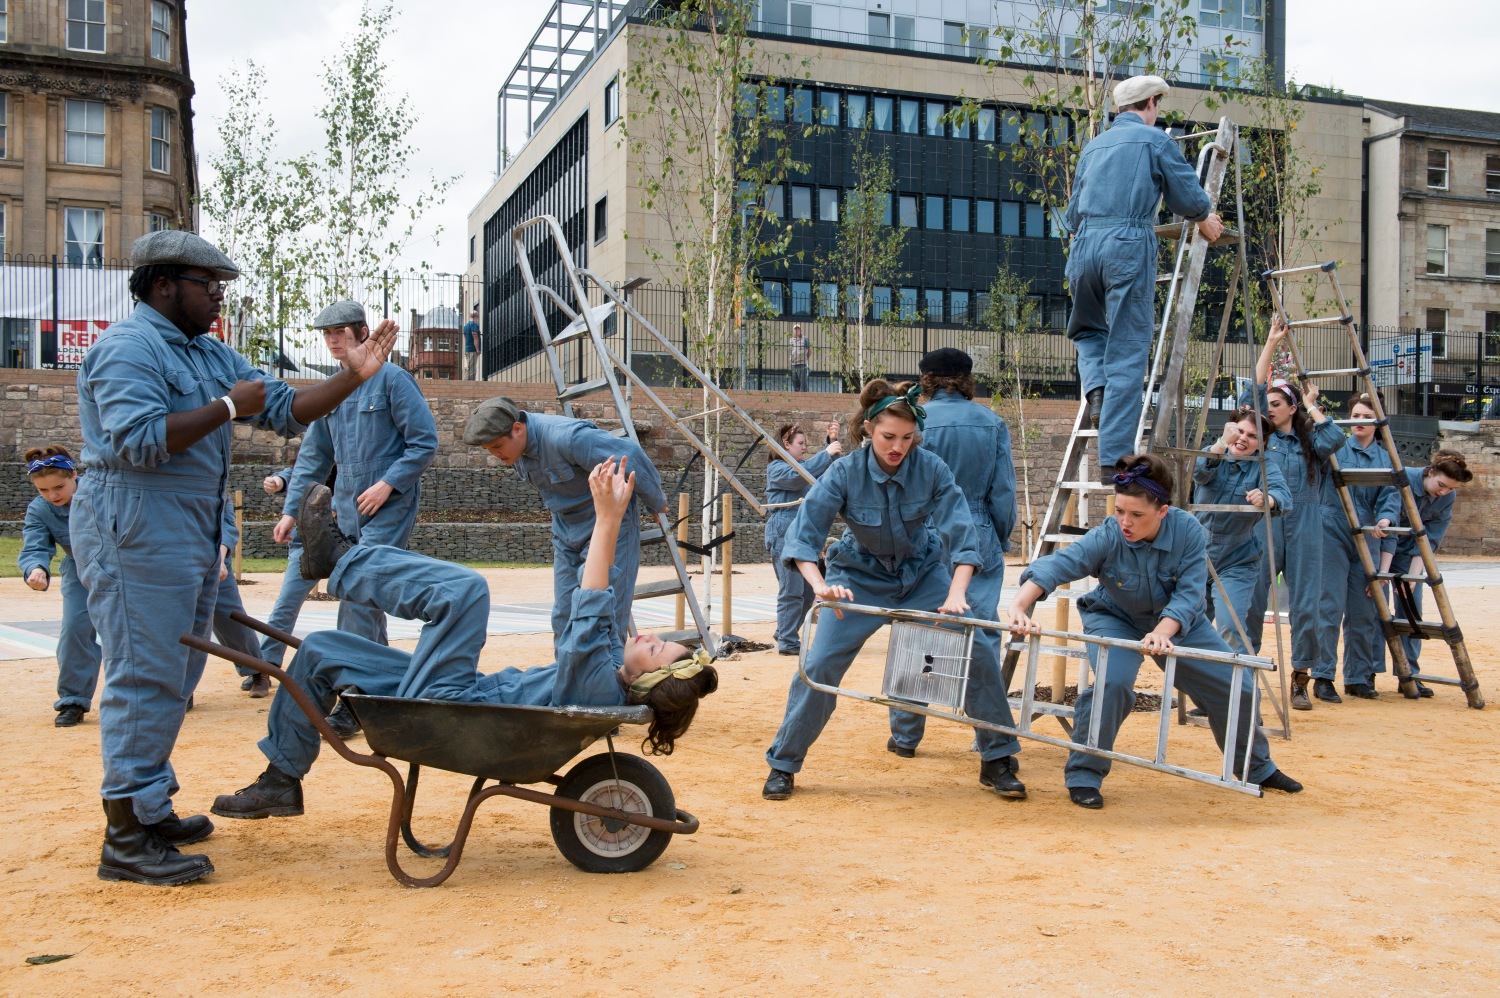 Image courtesy of National Theatre of Scotland © Tim Morozzo